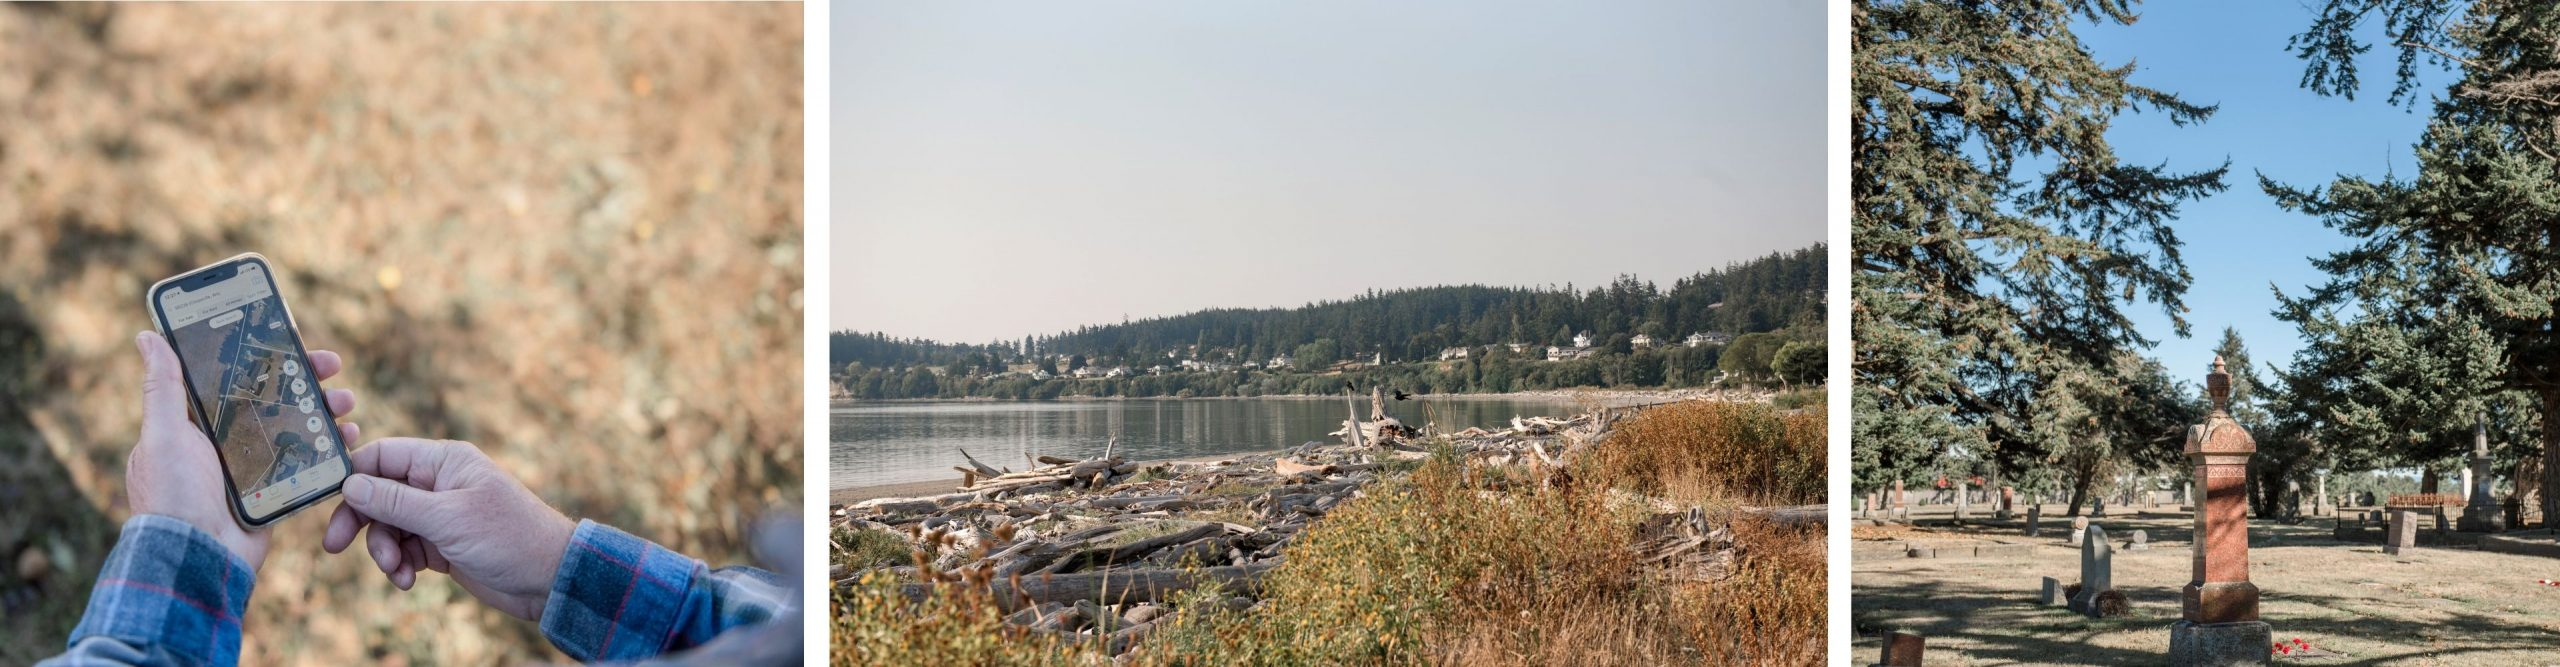 Buying vacant land on Whidbey Island, Land Specialist, windermere Real Estate, Best of Whidbey, Critical areas